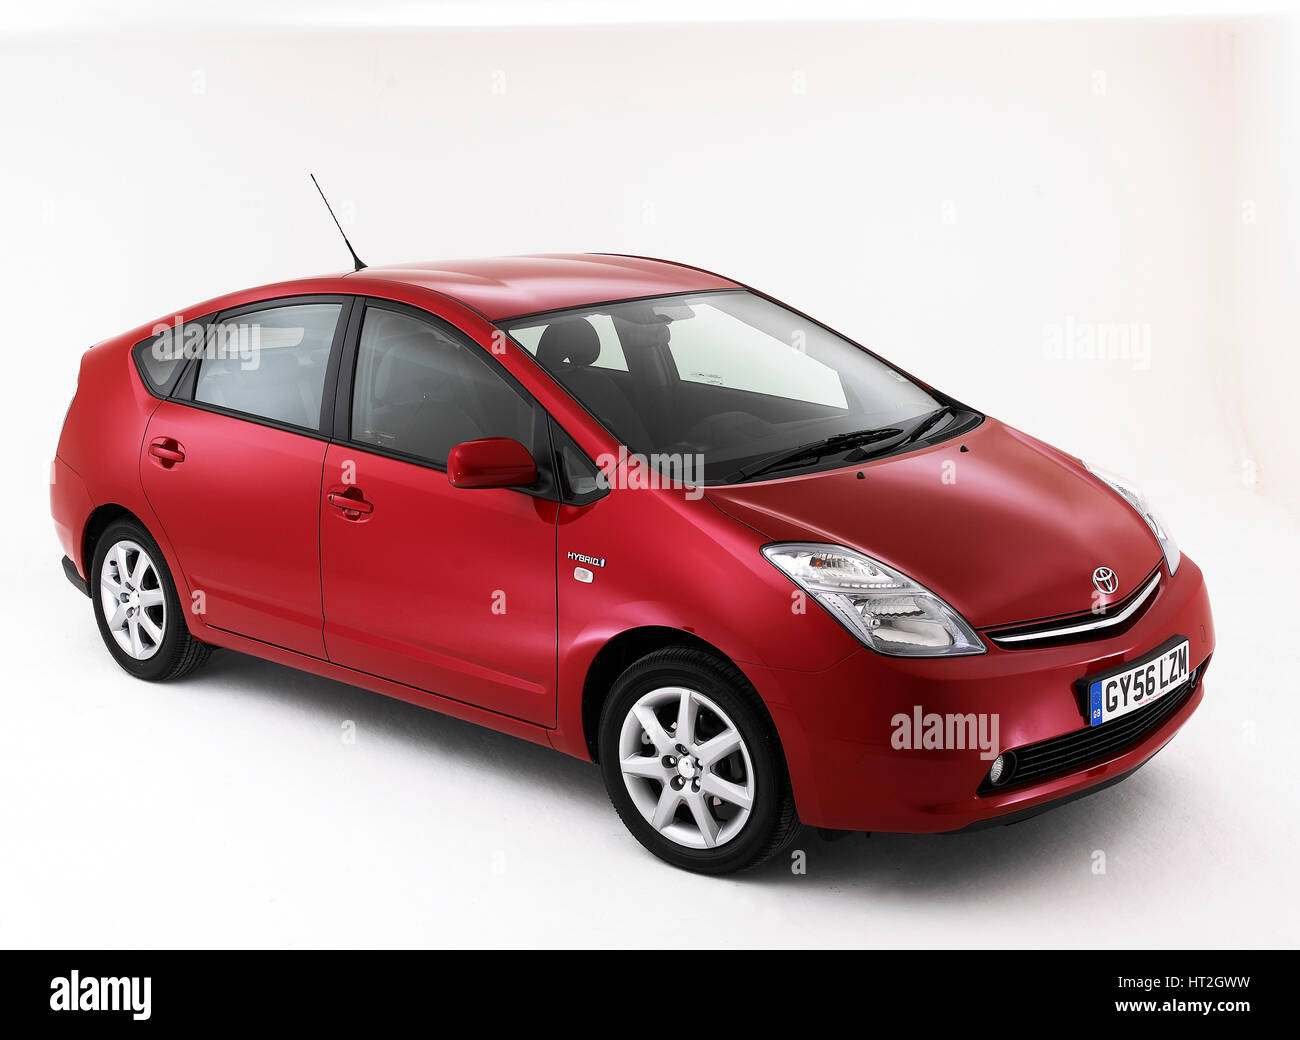 2006 Toyota Prius hybride artiste : Inconnu. Photo Stock